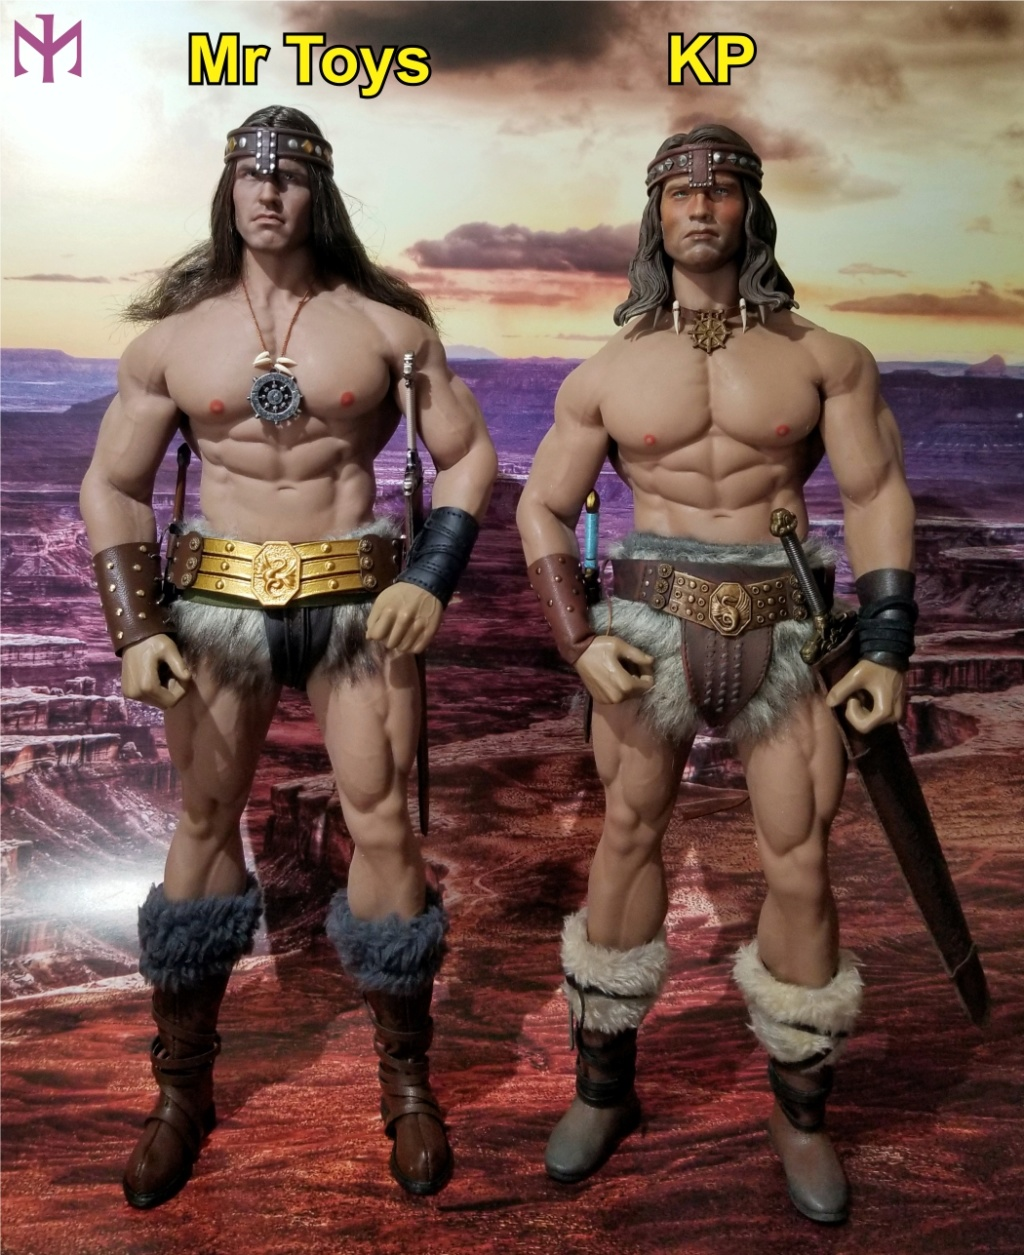 fantasy - Conan the Barbarian Masterclass Set and Head (MC01) by Kaustic Plastik Kpmc1210